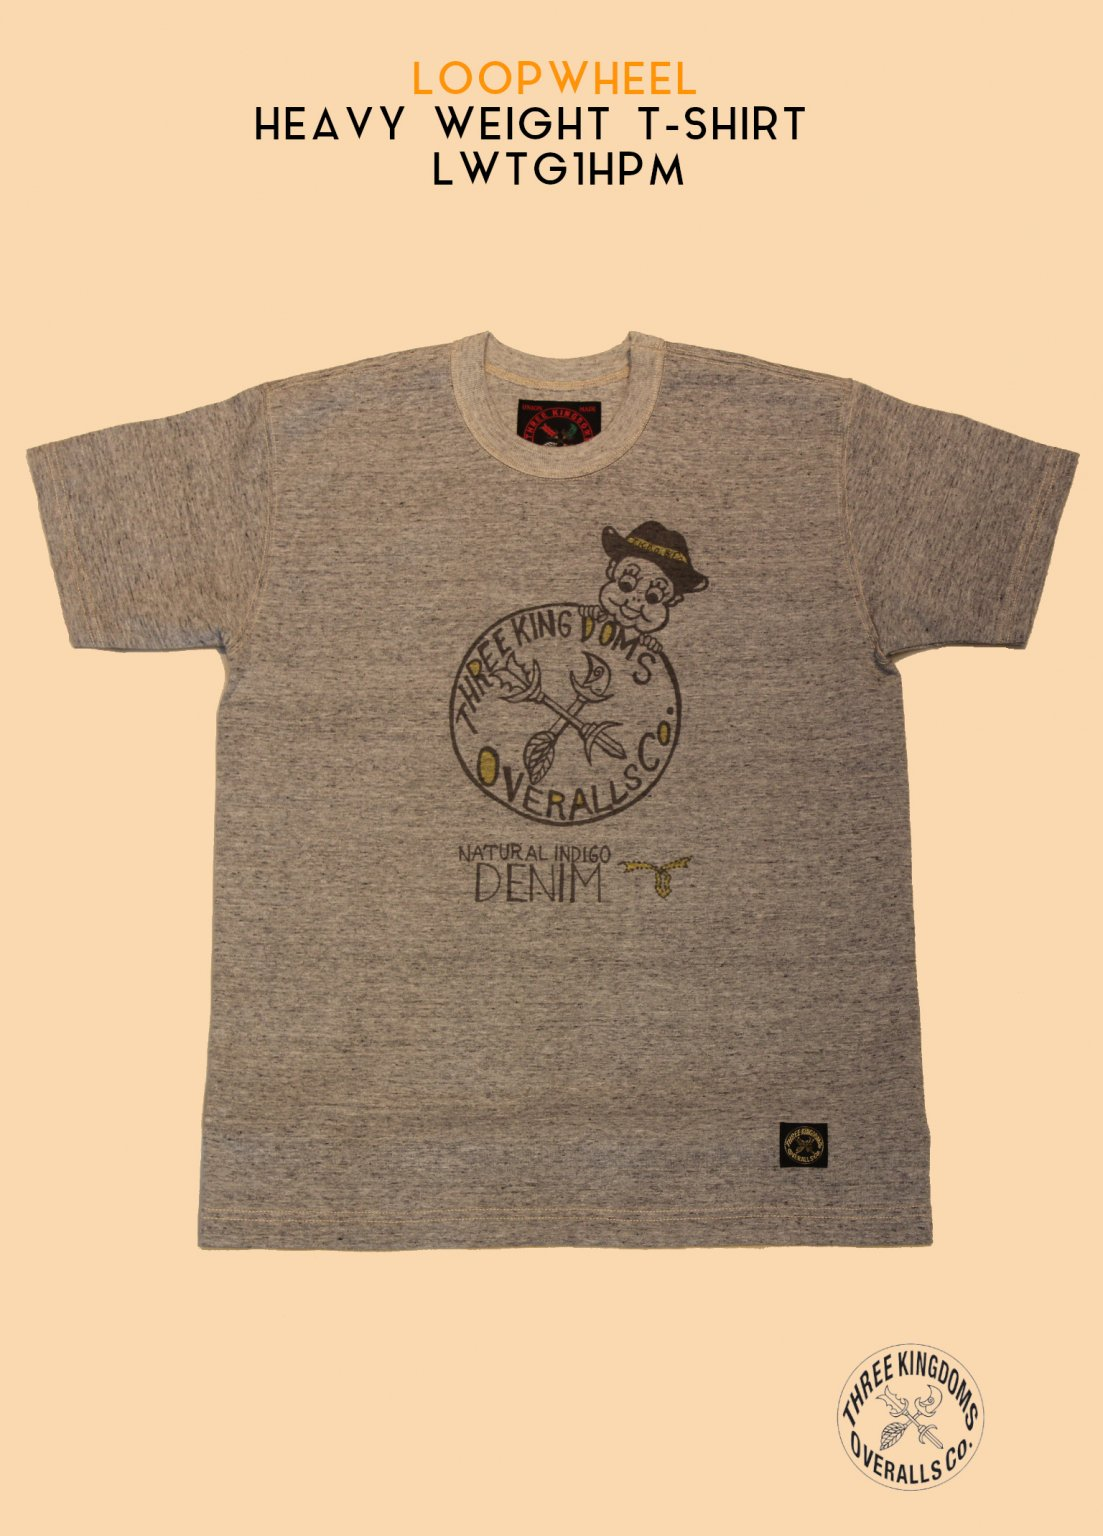 LWTG1HPM LOOPWHEEL HEAVY WEIGHT T-Shirt(Grandrelle Gray)<img class='new_mark_img2' src='https://img.shop-pro.jp/img/new/icons14.gif' style='border:none;display:inline;margin:0px;padding:0px;width:auto;' />